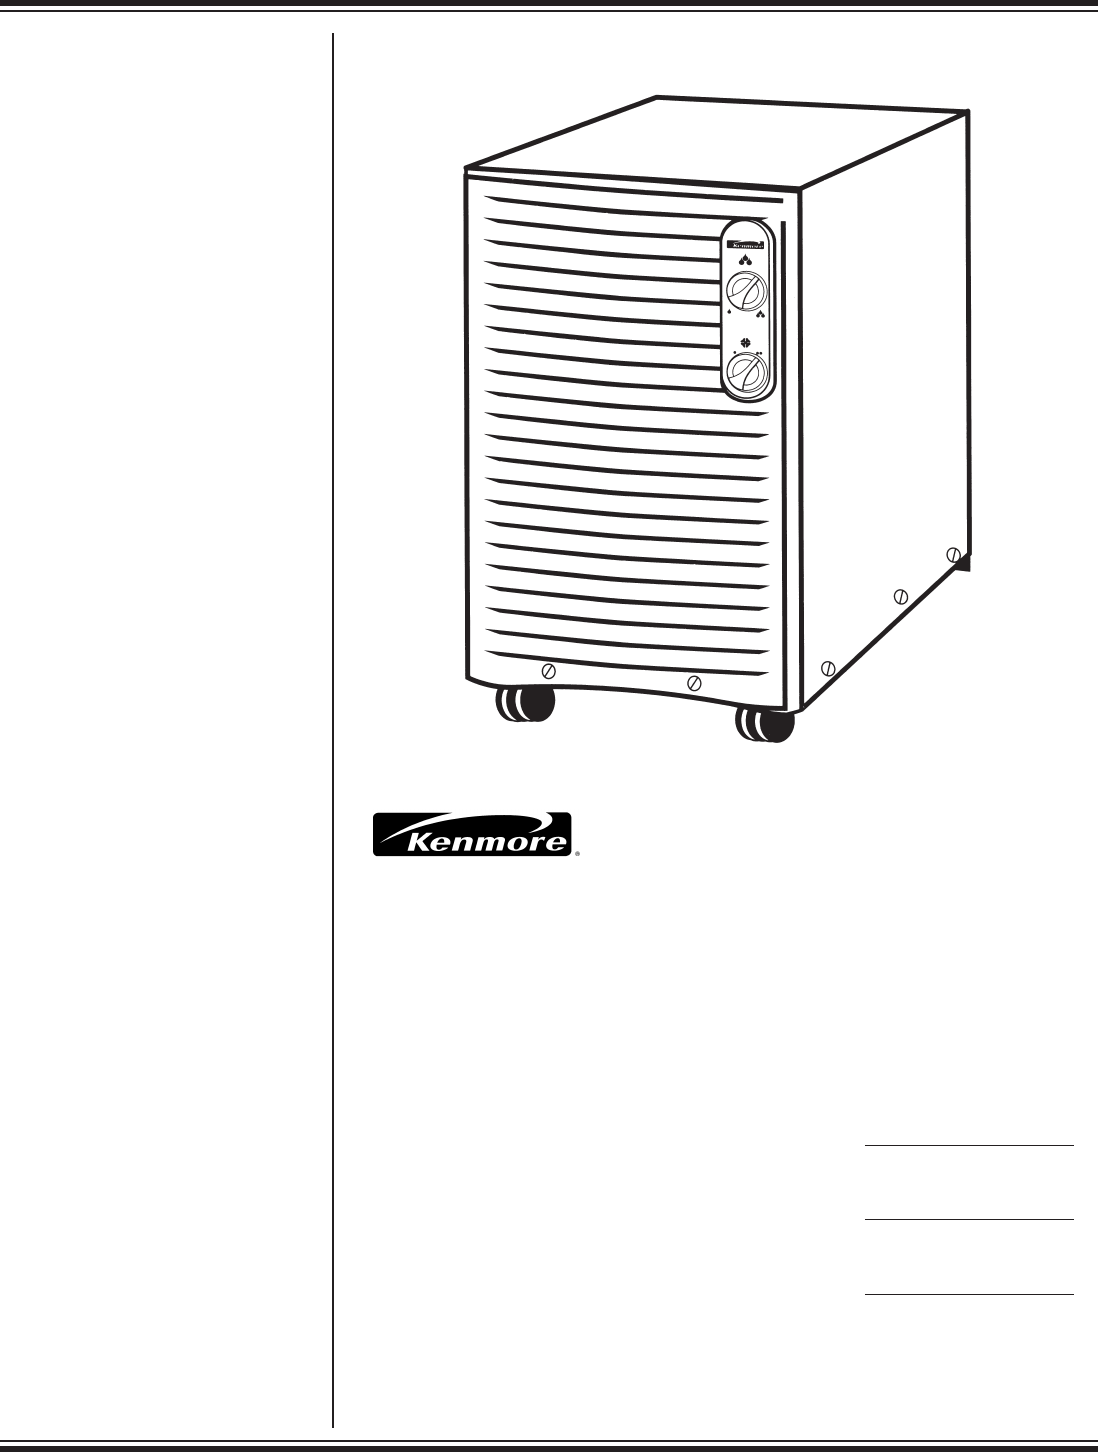 Kenmore Dehumidifier C675 25010 User Guide ManualsOnline.com #383637